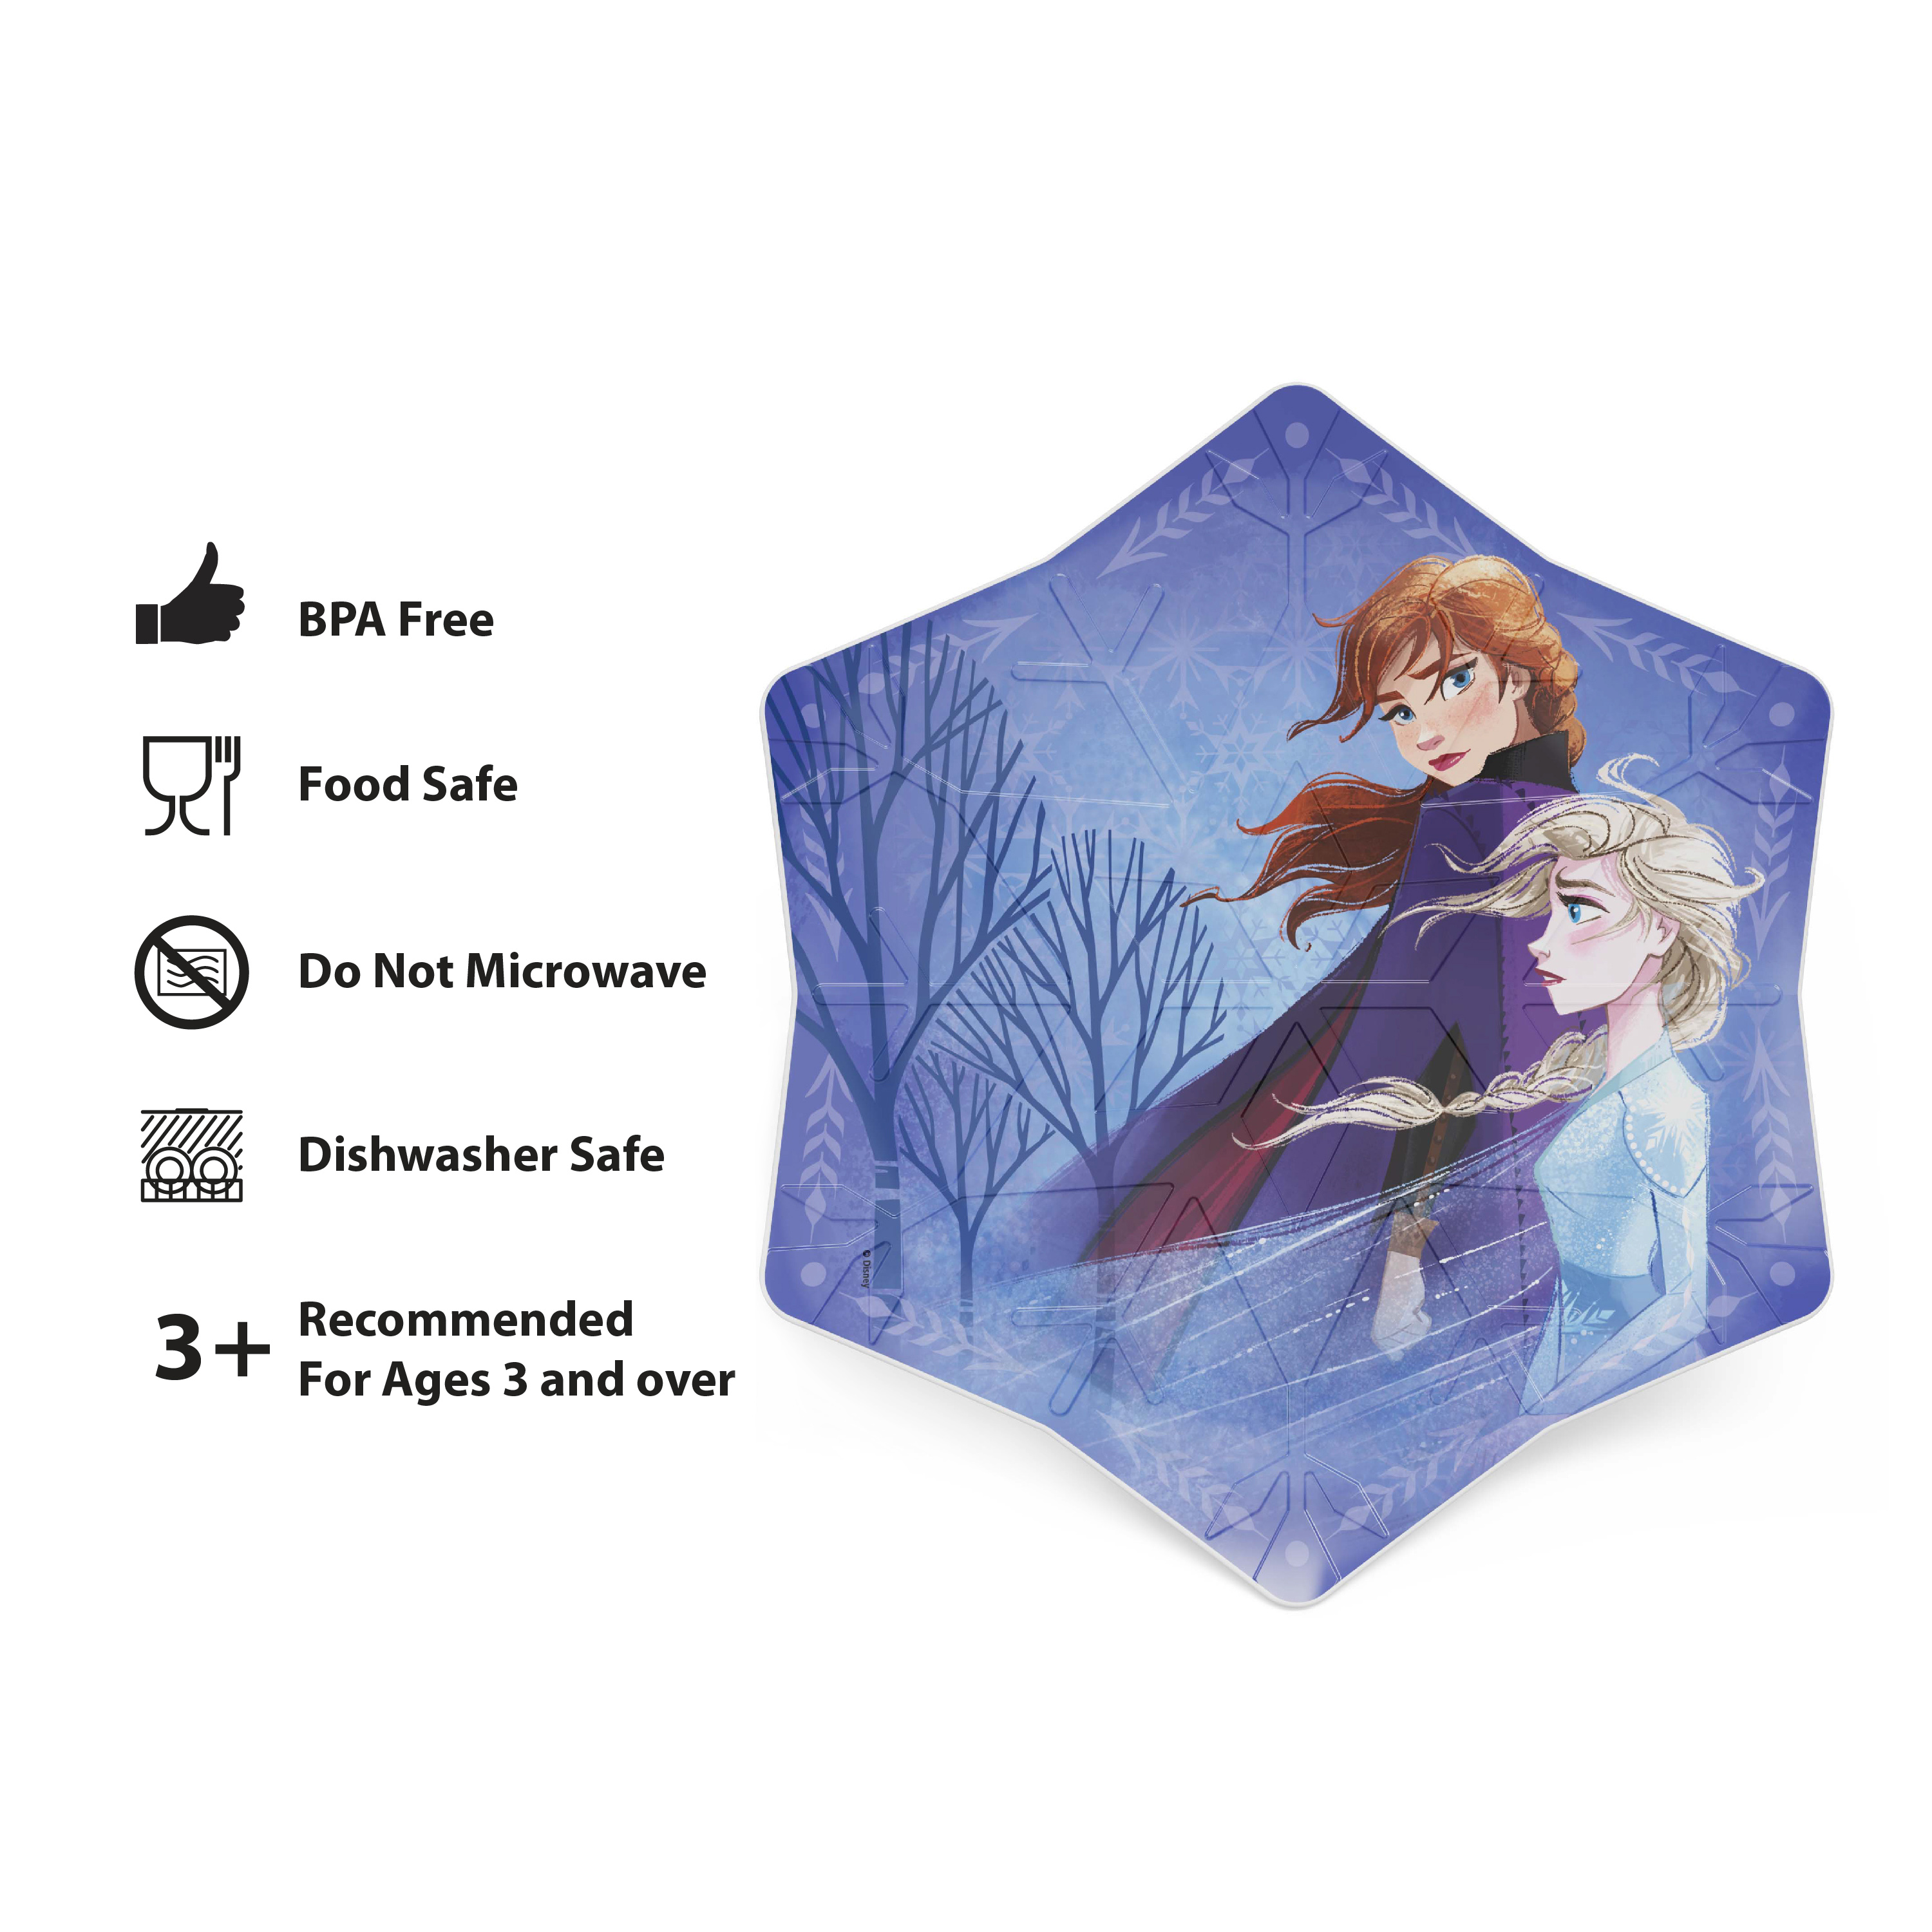 Disney Frozen 2 Movie Kid's Dinnerware Set, Anna and Elsa, 2-piece set slideshow image 5